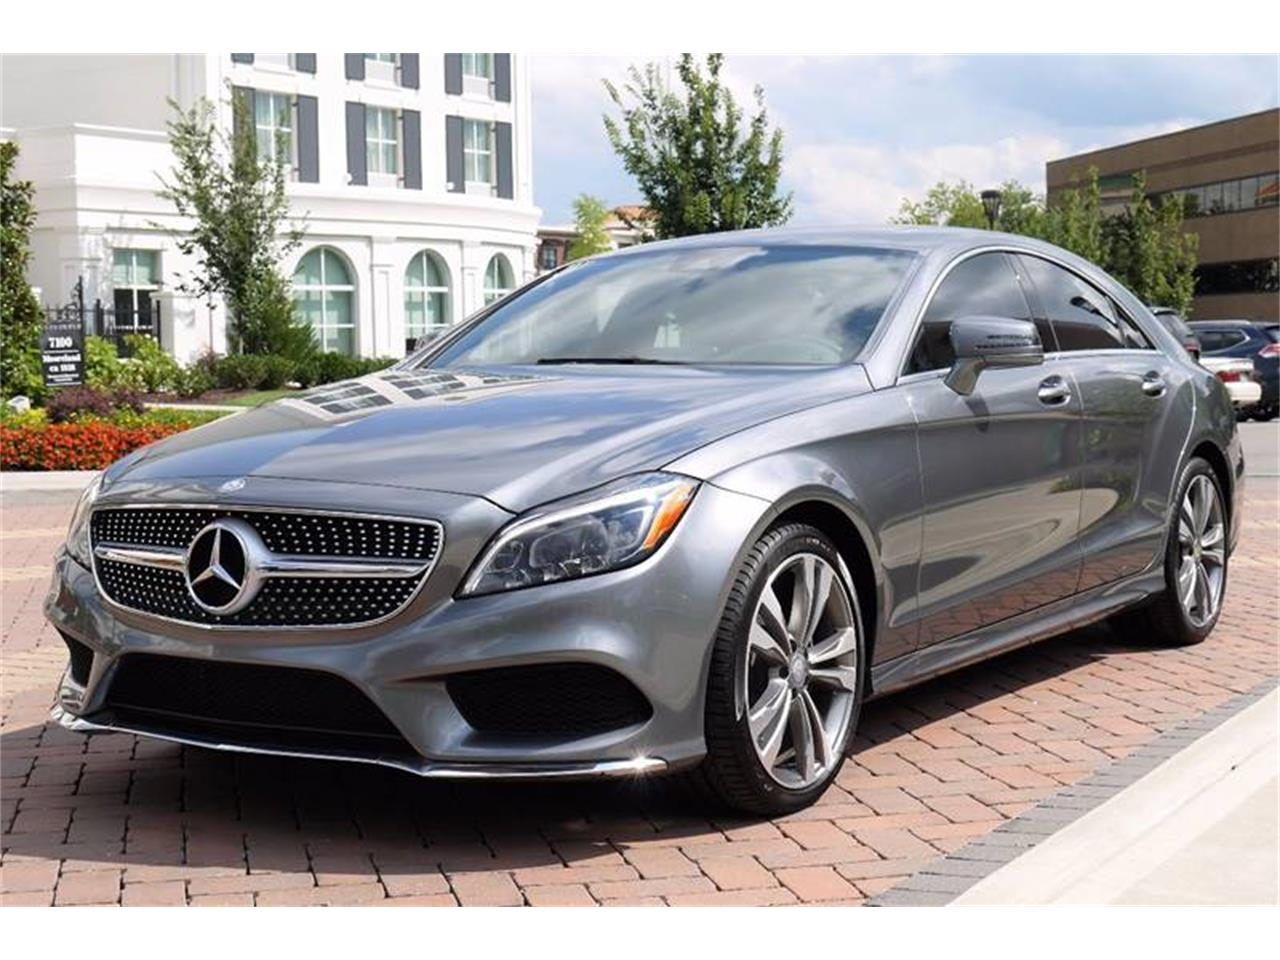 Large Picture of '16 Mercedes-Benz CLS-Class located in Tennessee - LEUE